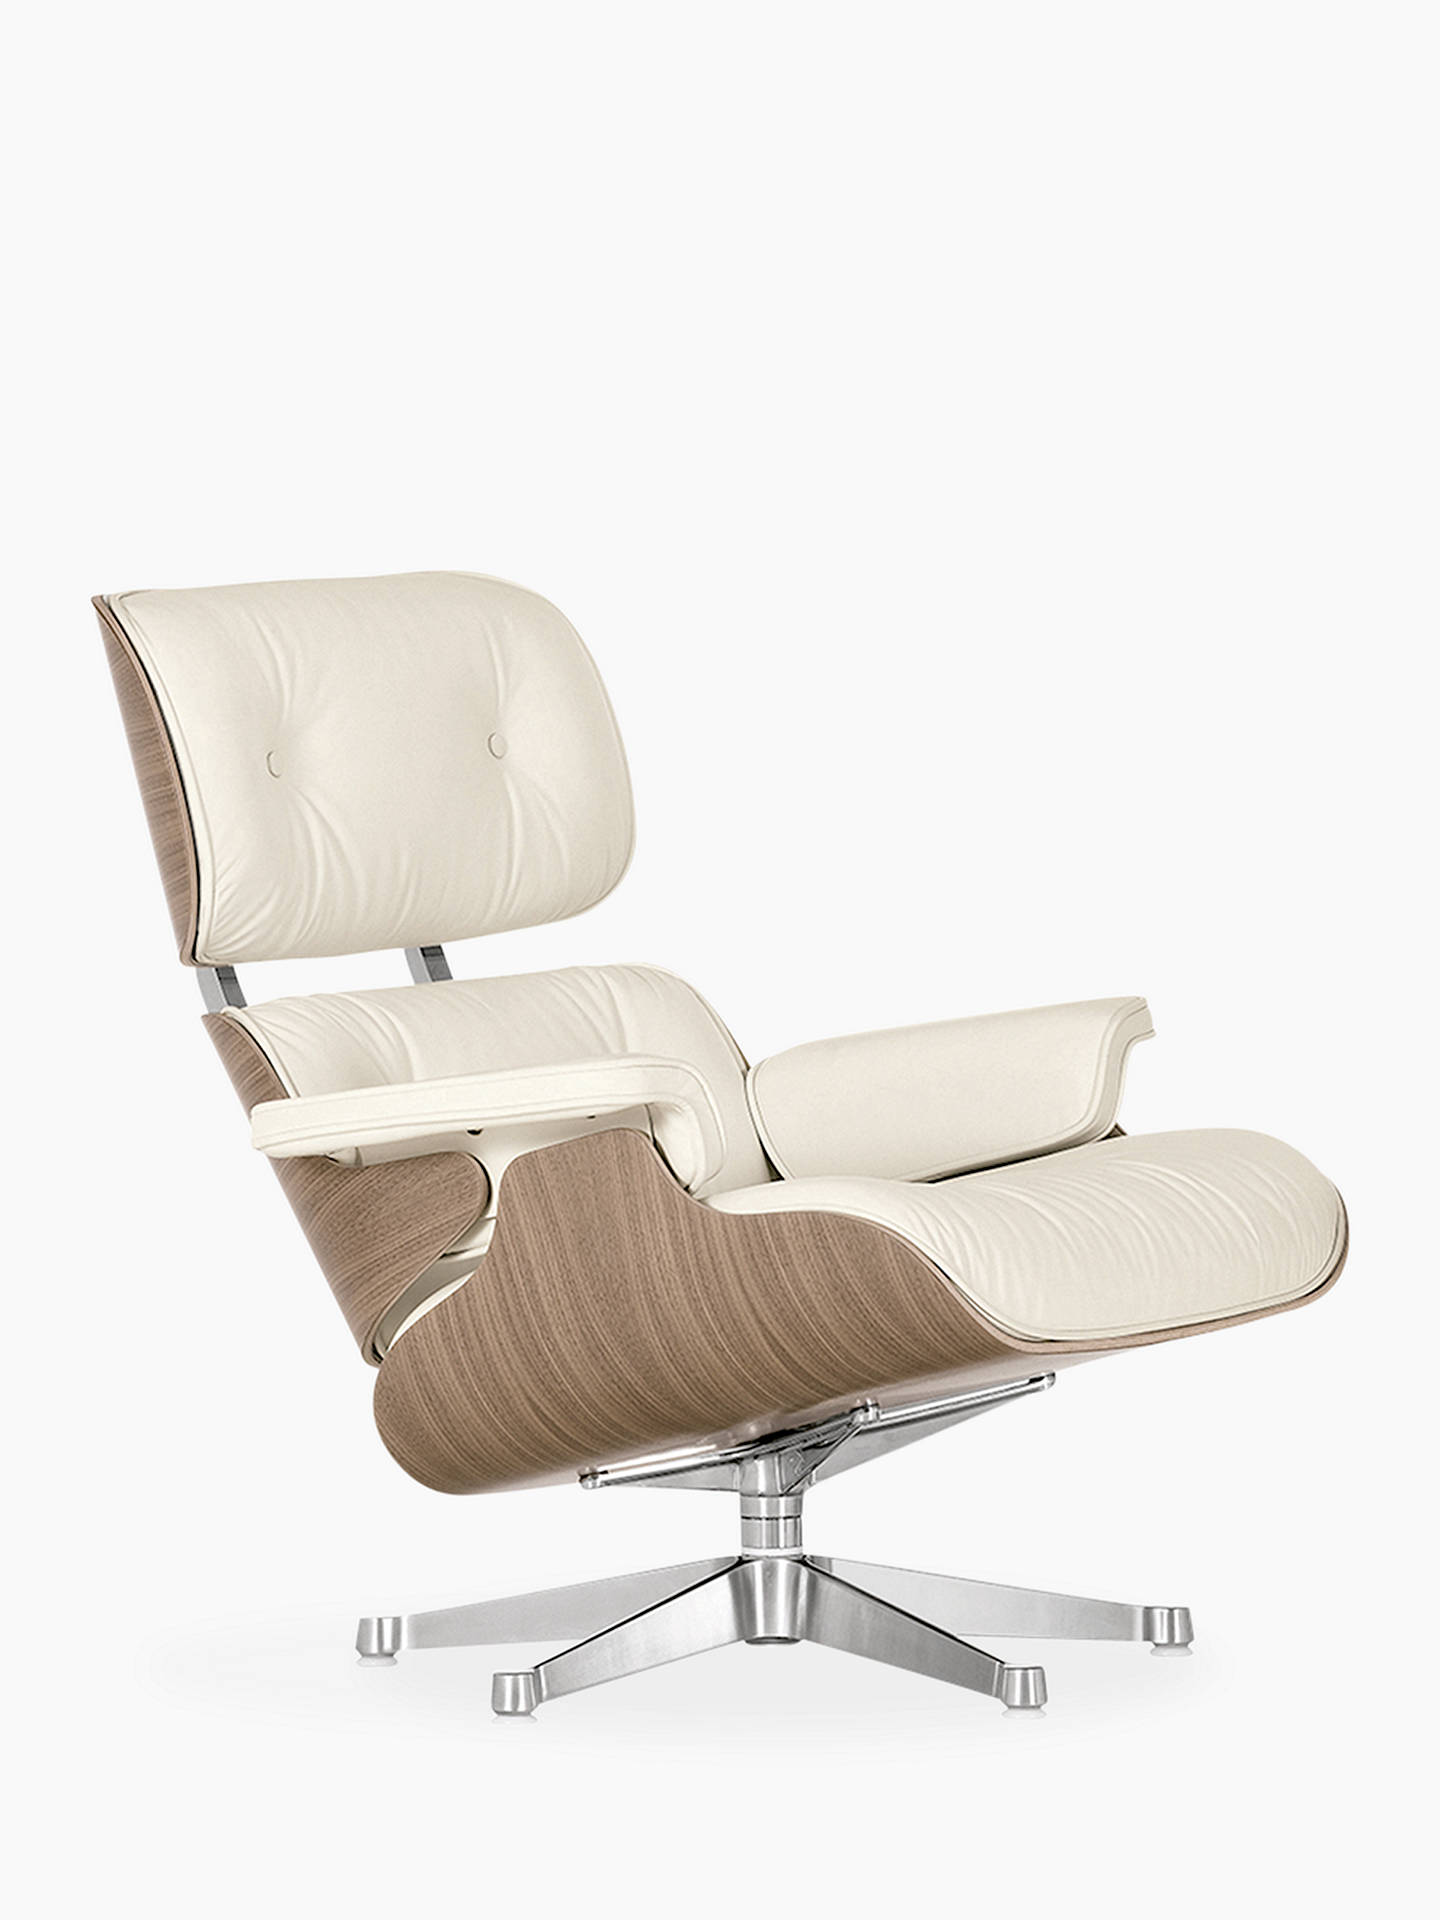 Miraculous Vitra Eames Lounge Armchair Ottoman White Walnut At John Pdpeps Interior Chair Design Pdpepsorg